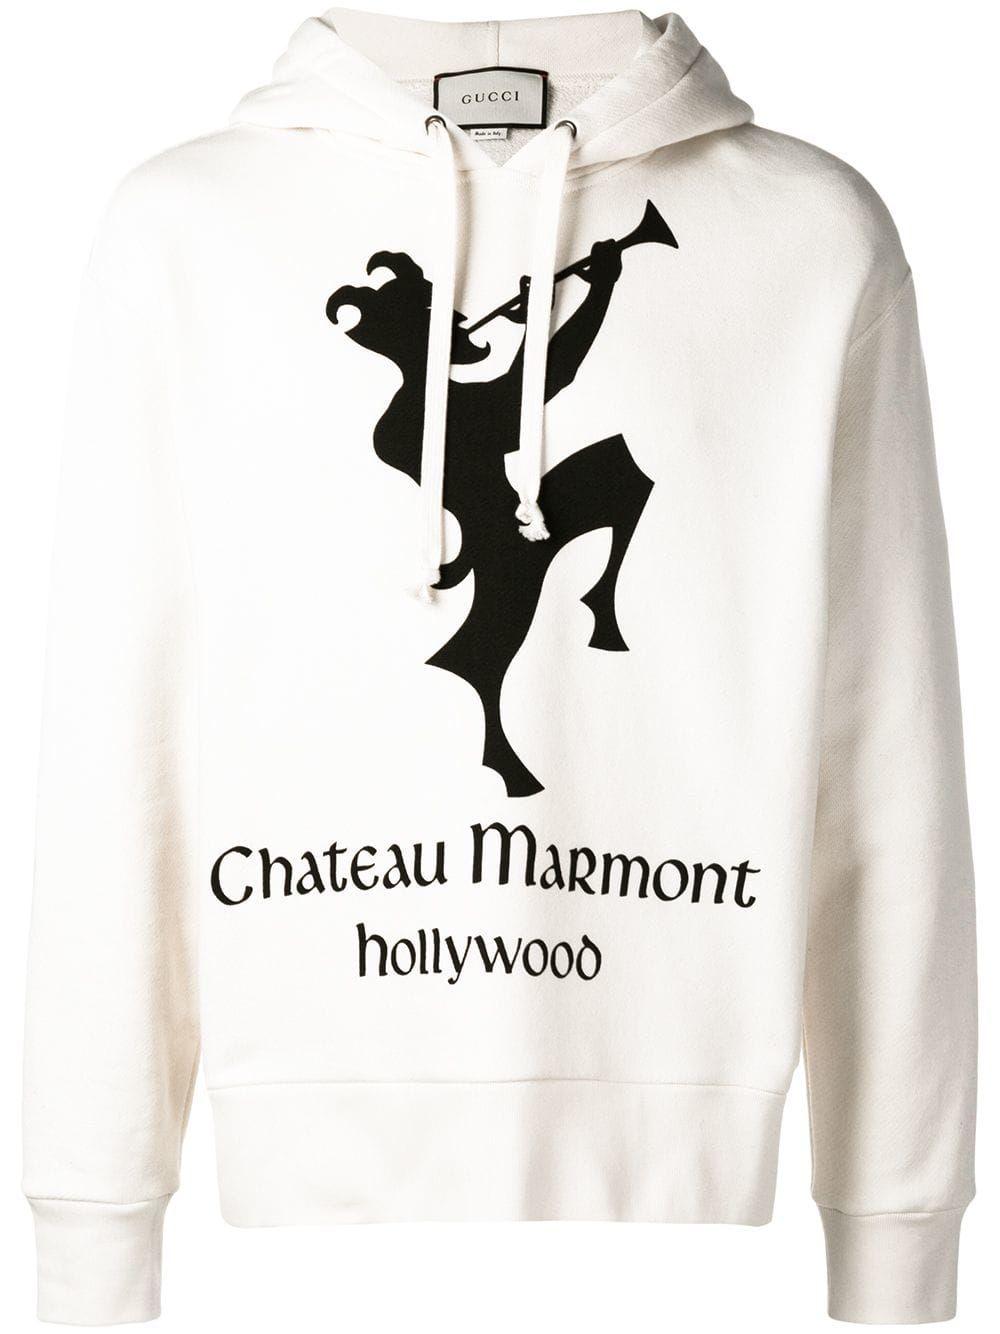 7cfa3fb13 GUCCI GUCCI - CHATEAU MARMONT FLORAL HOODY - MENS - WHITE. #gucci #cloth